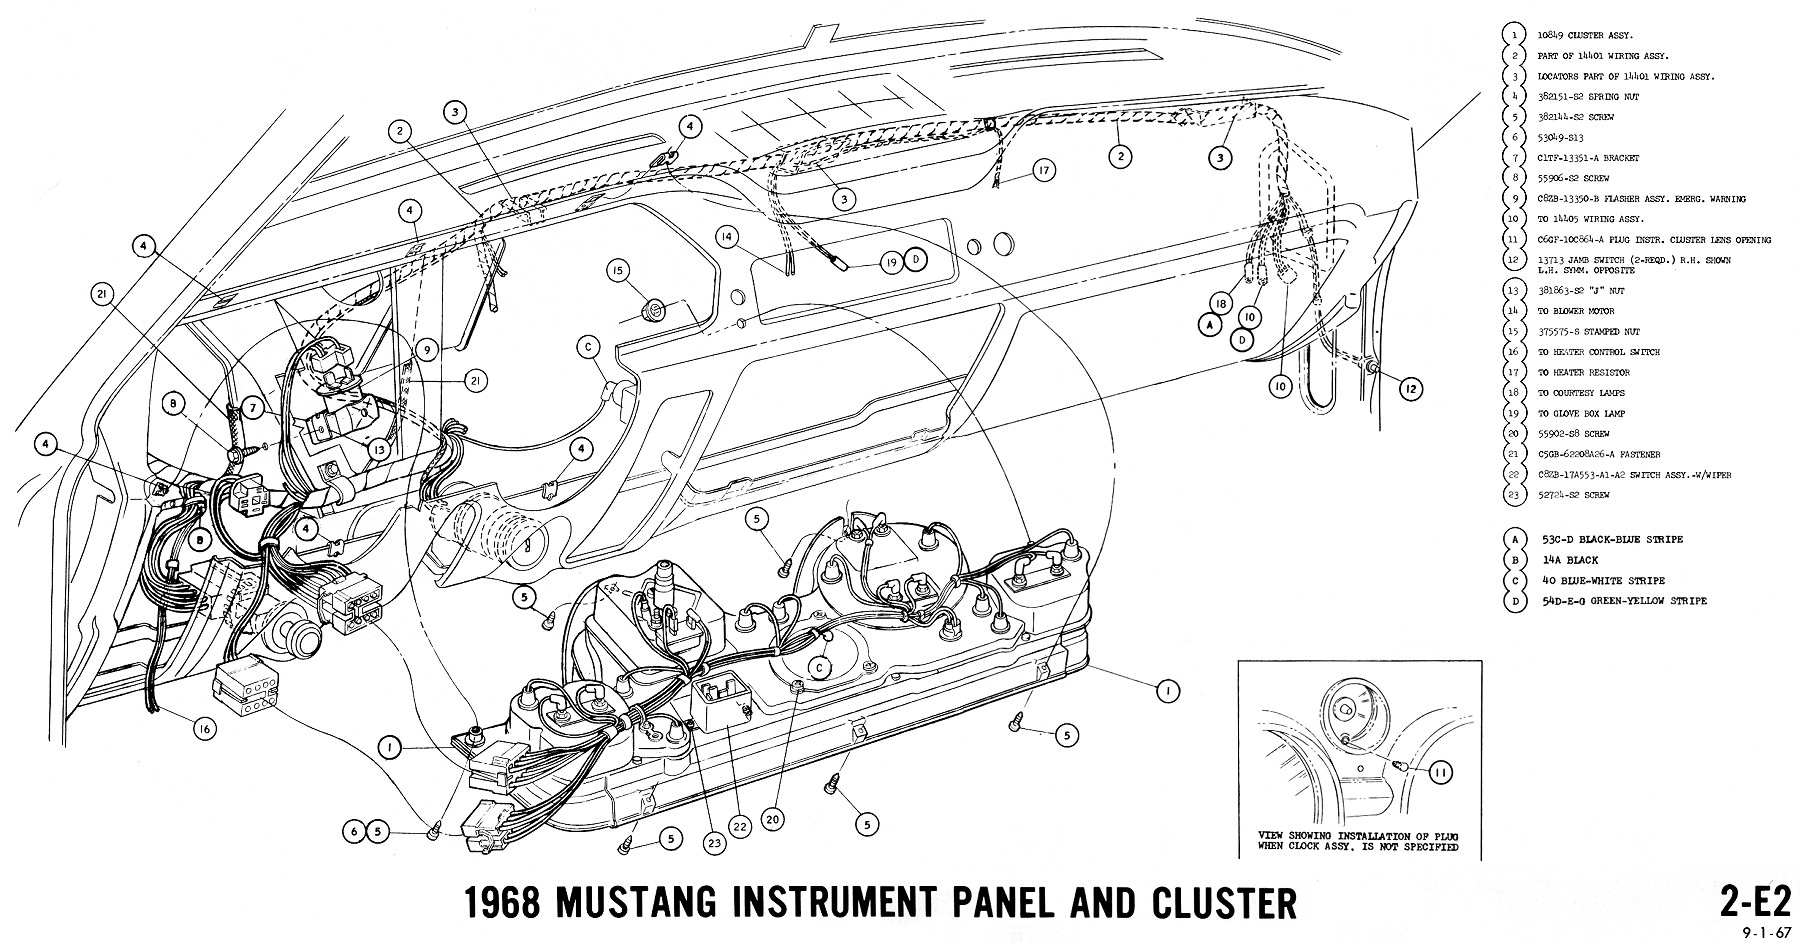 hight resolution of 1970 mustang instrument panel wiring diagram auto wiring diagram 1970 mustang instrument wiring diagram schematic